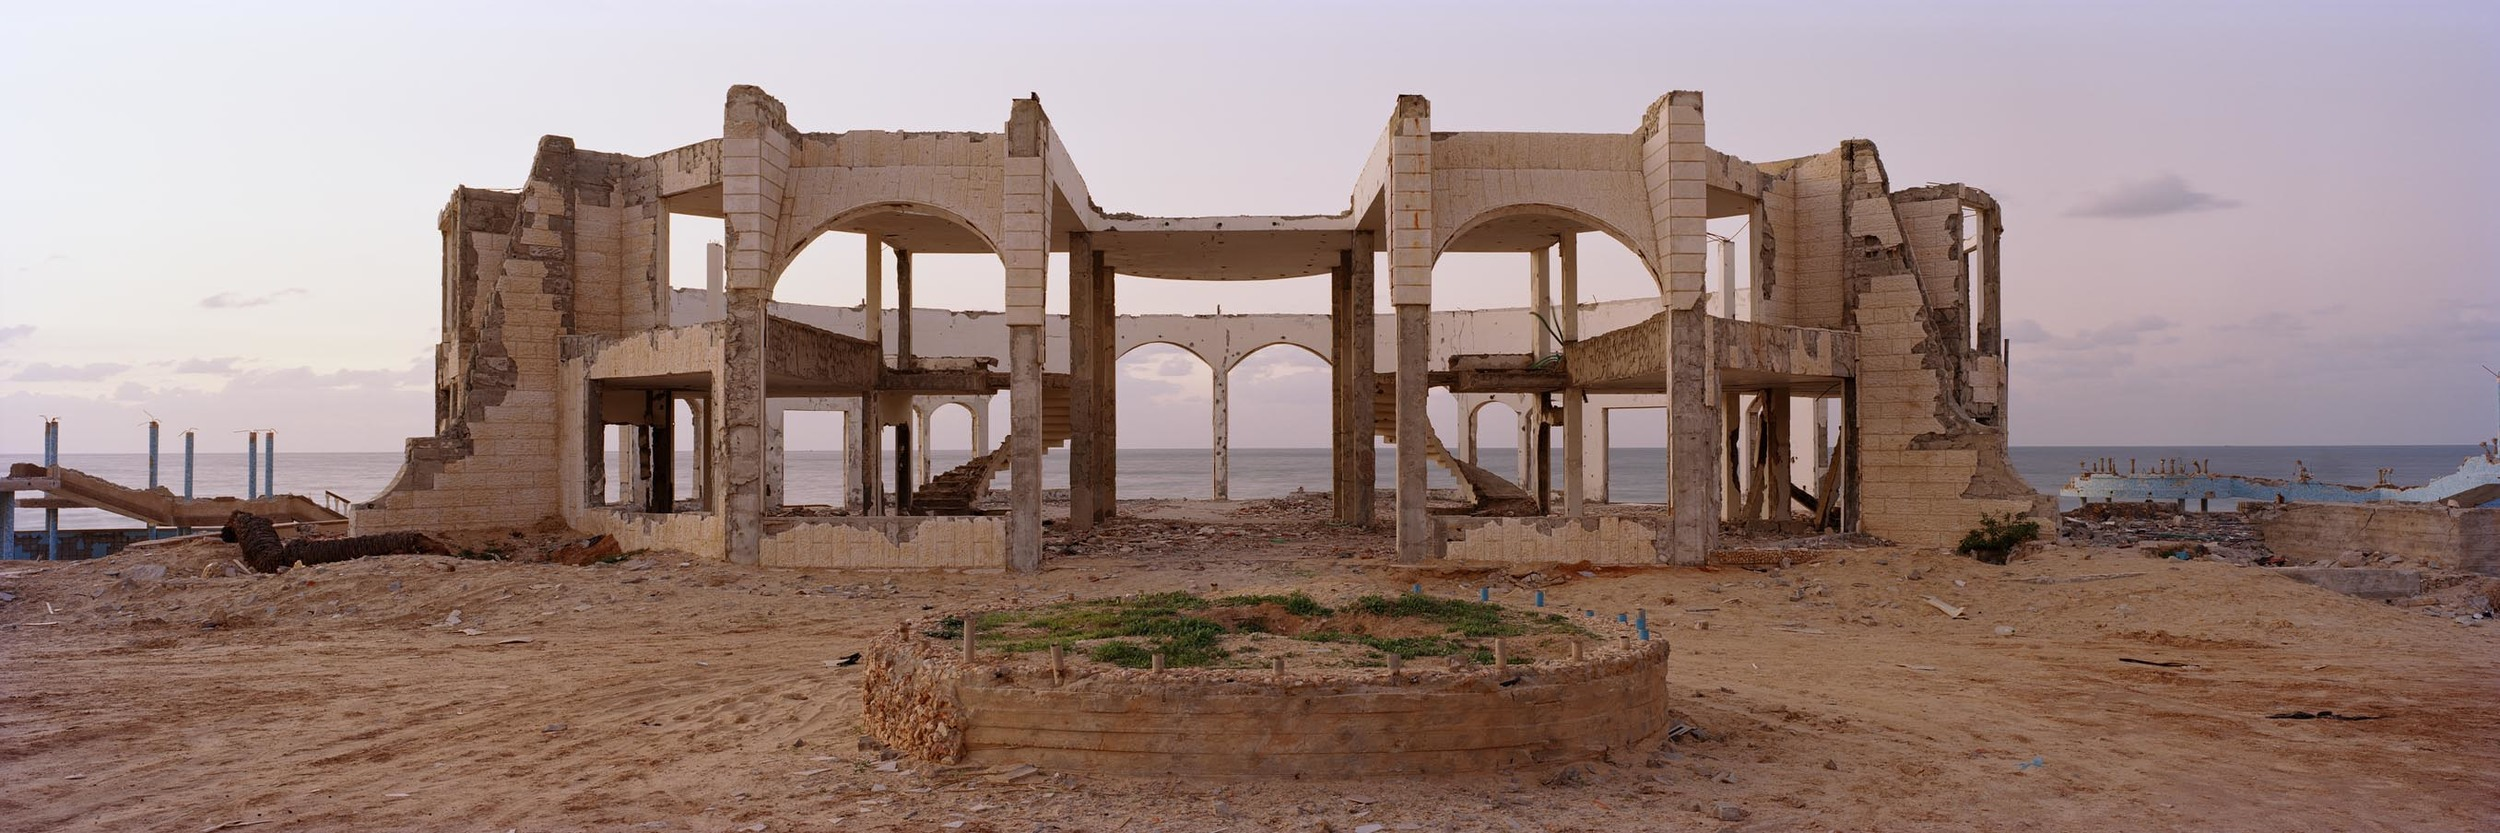 The remains of a hotel and restaurant north Gaza of City which was partly destroyed by Hamas and partly by the Israeli army. Finally by the Israeli army during the attack on the Gaza Strip at the turn of 2008/09. December 2009